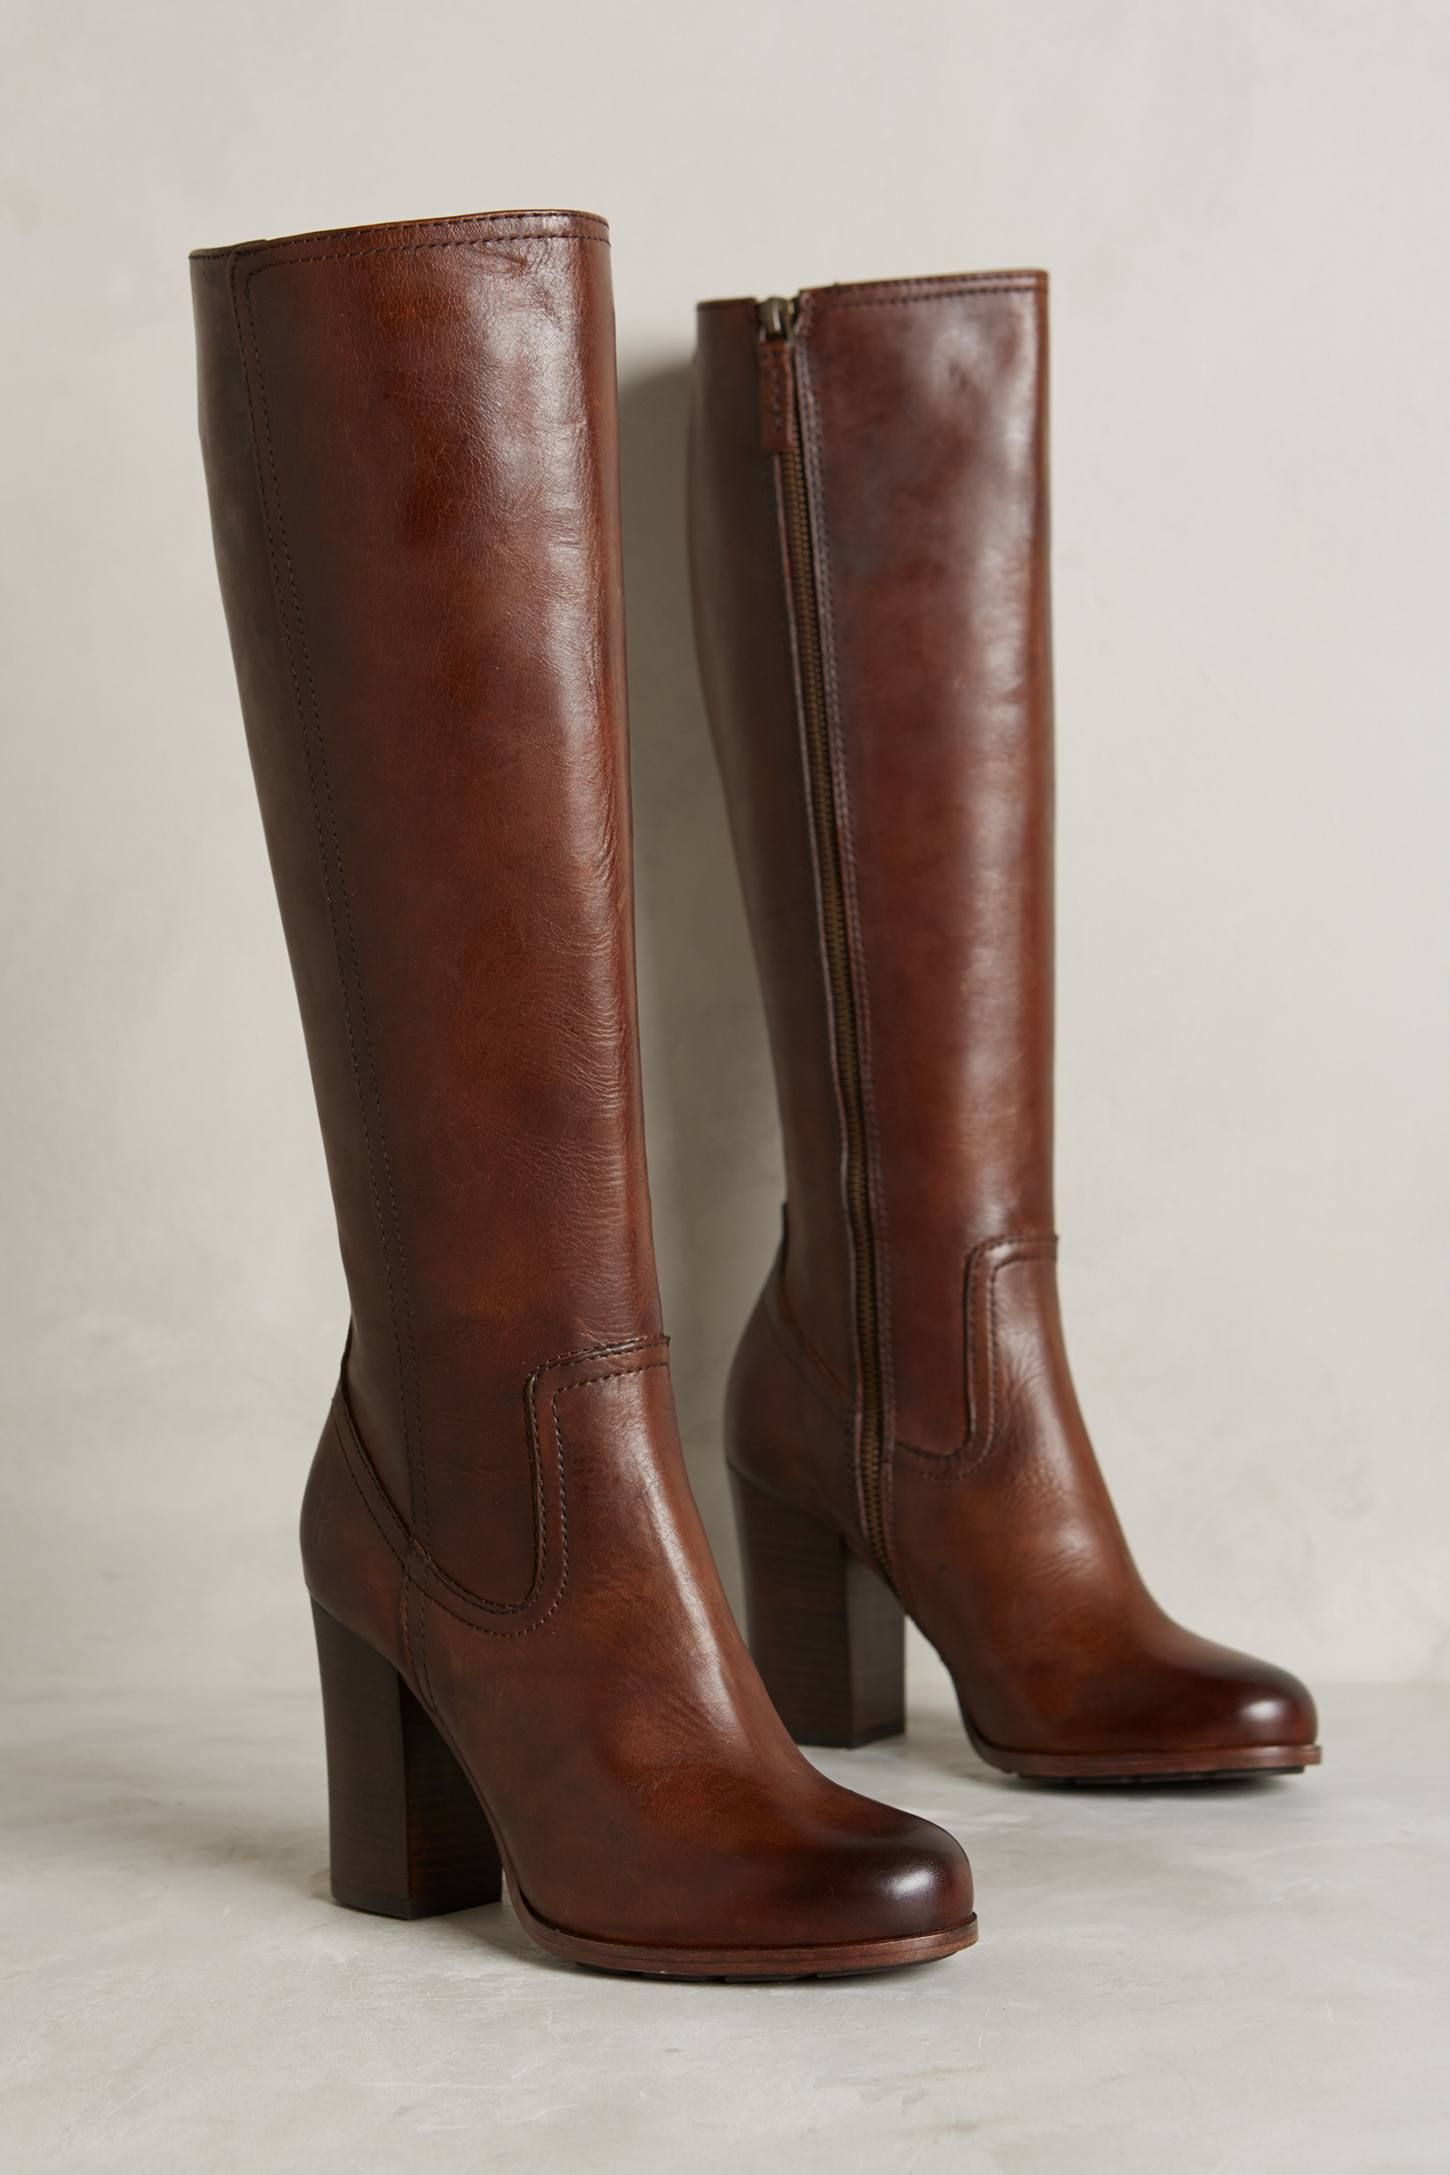 8a6eac12b85 Frye Parker Tall Boots - anthropologie | Shoes in 2019 | Shoes ...